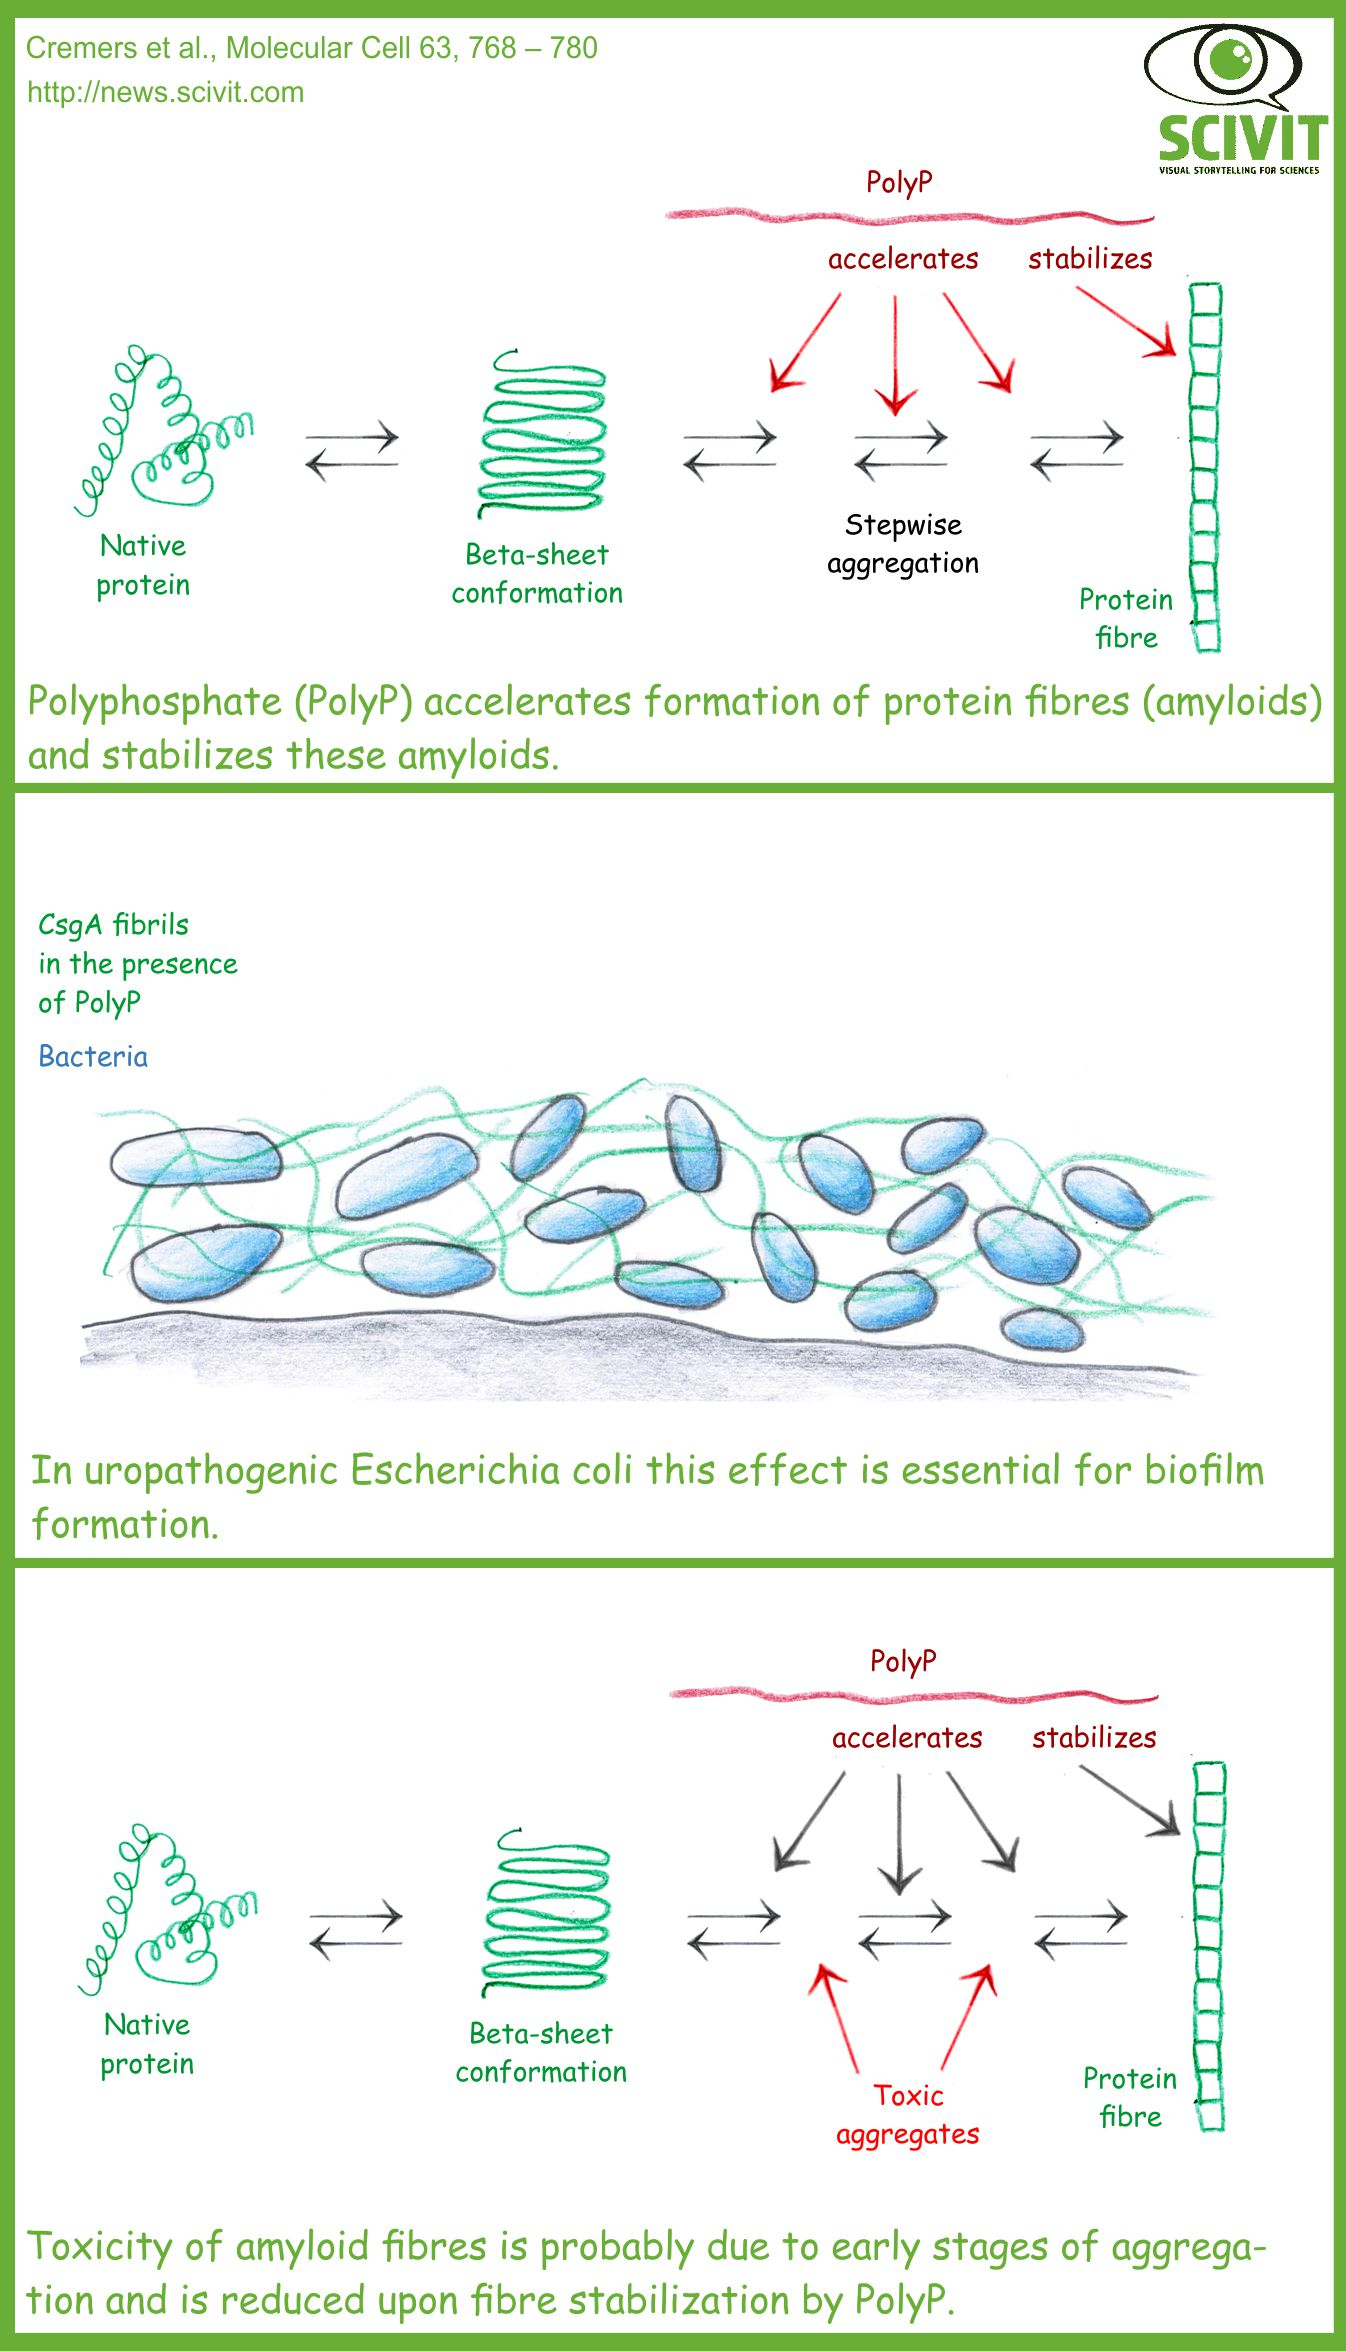 Polyphosphate initiates and stabilizes the formation of protein aggregates